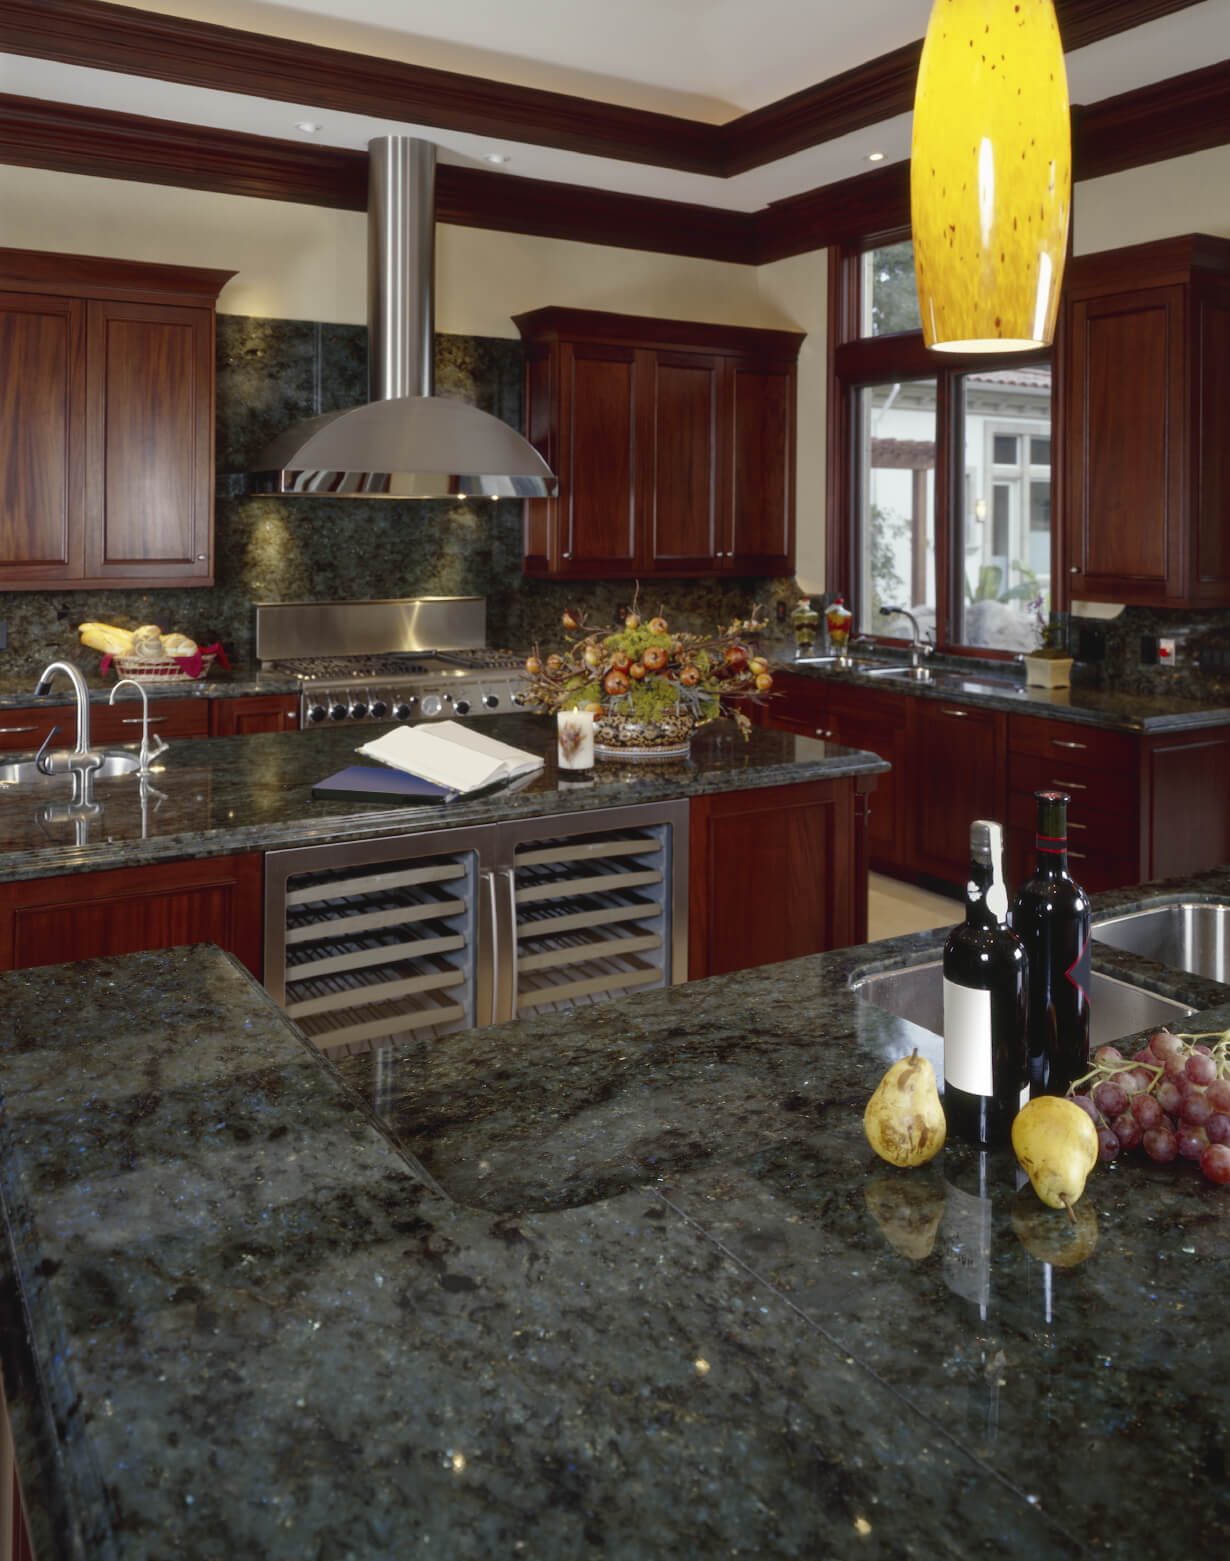 52 Dark Kitchens with Dark Wood OR Black Kitchen Cabinets (2019) Green Kitchen Walls White Cabinets Black Countertops on white kitchens with granite countertops, white kitchen cabinets tile, white cabinets with white countertops, white cabinets green granite, white kitchen cabinets lighting, white appliances green countertops, white kitchen cabinets silestone, white kitchen cabinets green backsplash, white kitchen cabinets laminate, kitchen cabinets and countertops, kitchen ideas green countertops, brown kitchens with white countertops, 1950 green cabinets white countertops, white kitchen cabinets green walls, white kitchen cabinets granite, white kitchen cabinets green paint, green kitchen dark countertops, hgtv kitchens with green countertops, white kitchen cabinets soapstone counters, green granite kitchen countertops,